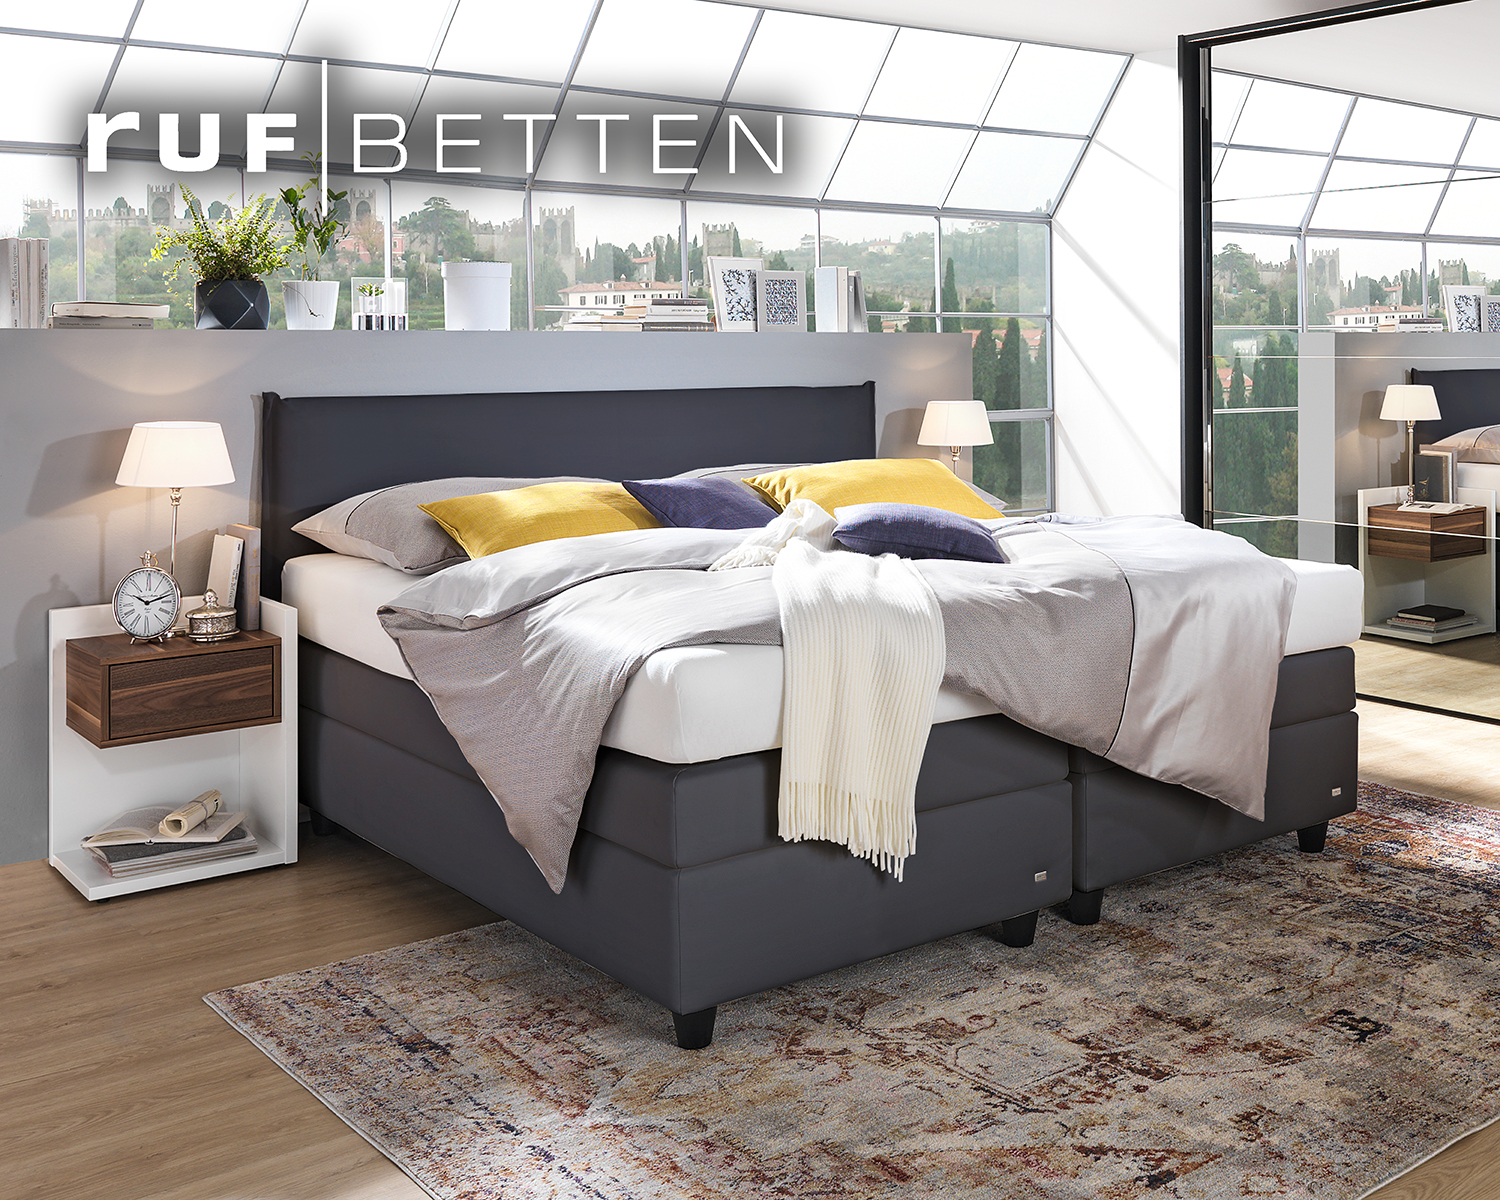 anzeige aktionsfinale bei m bel mahler 30 auf. Black Bedroom Furniture Sets. Home Design Ideas